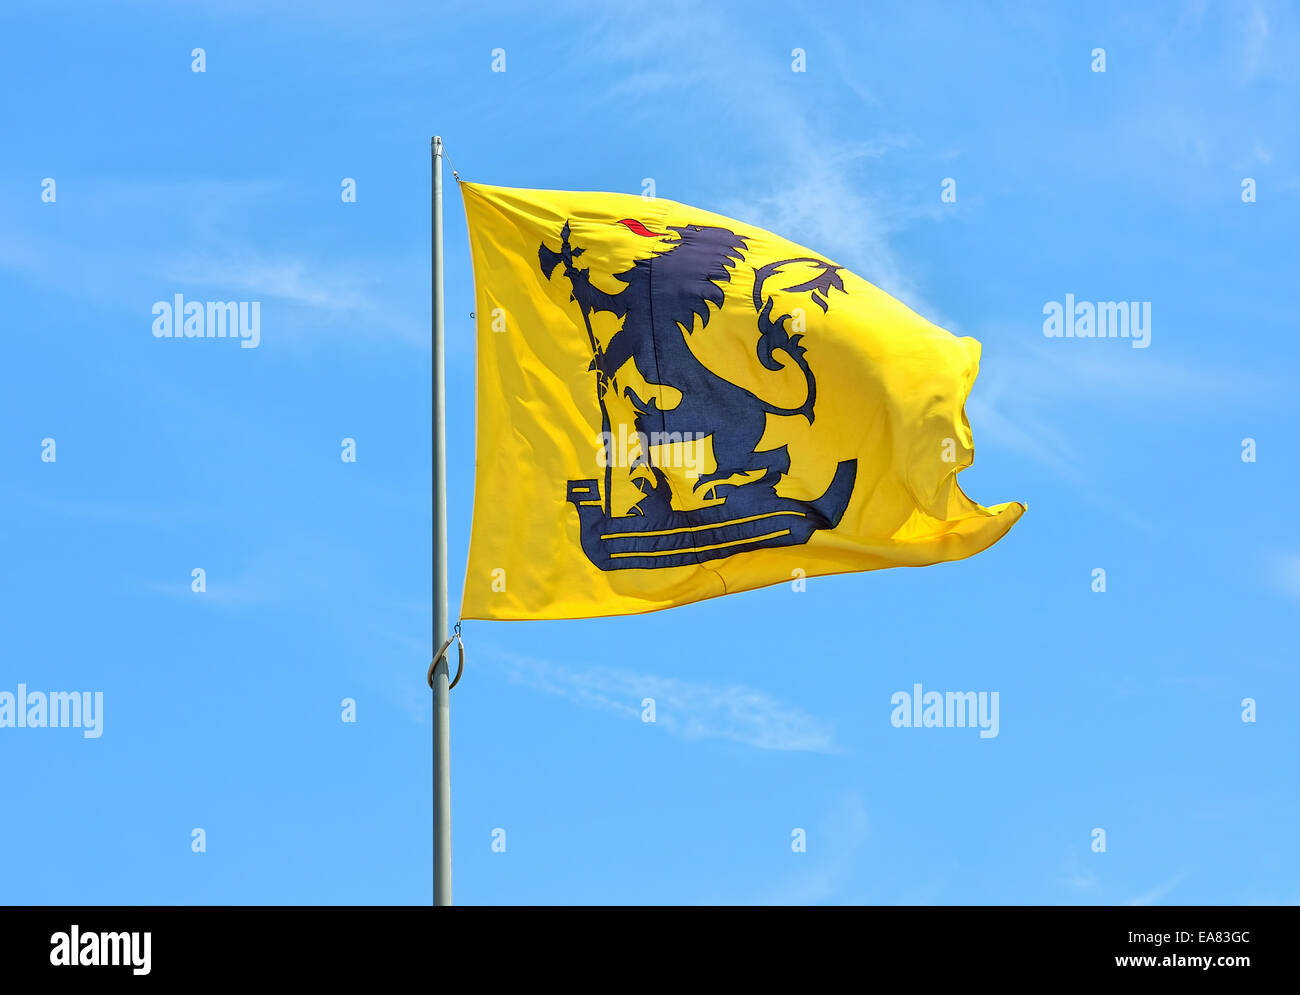 Flag of municipality Nieuwpoort in province West Flanders, Belgium, waving on the wind in clear day - Stock Image